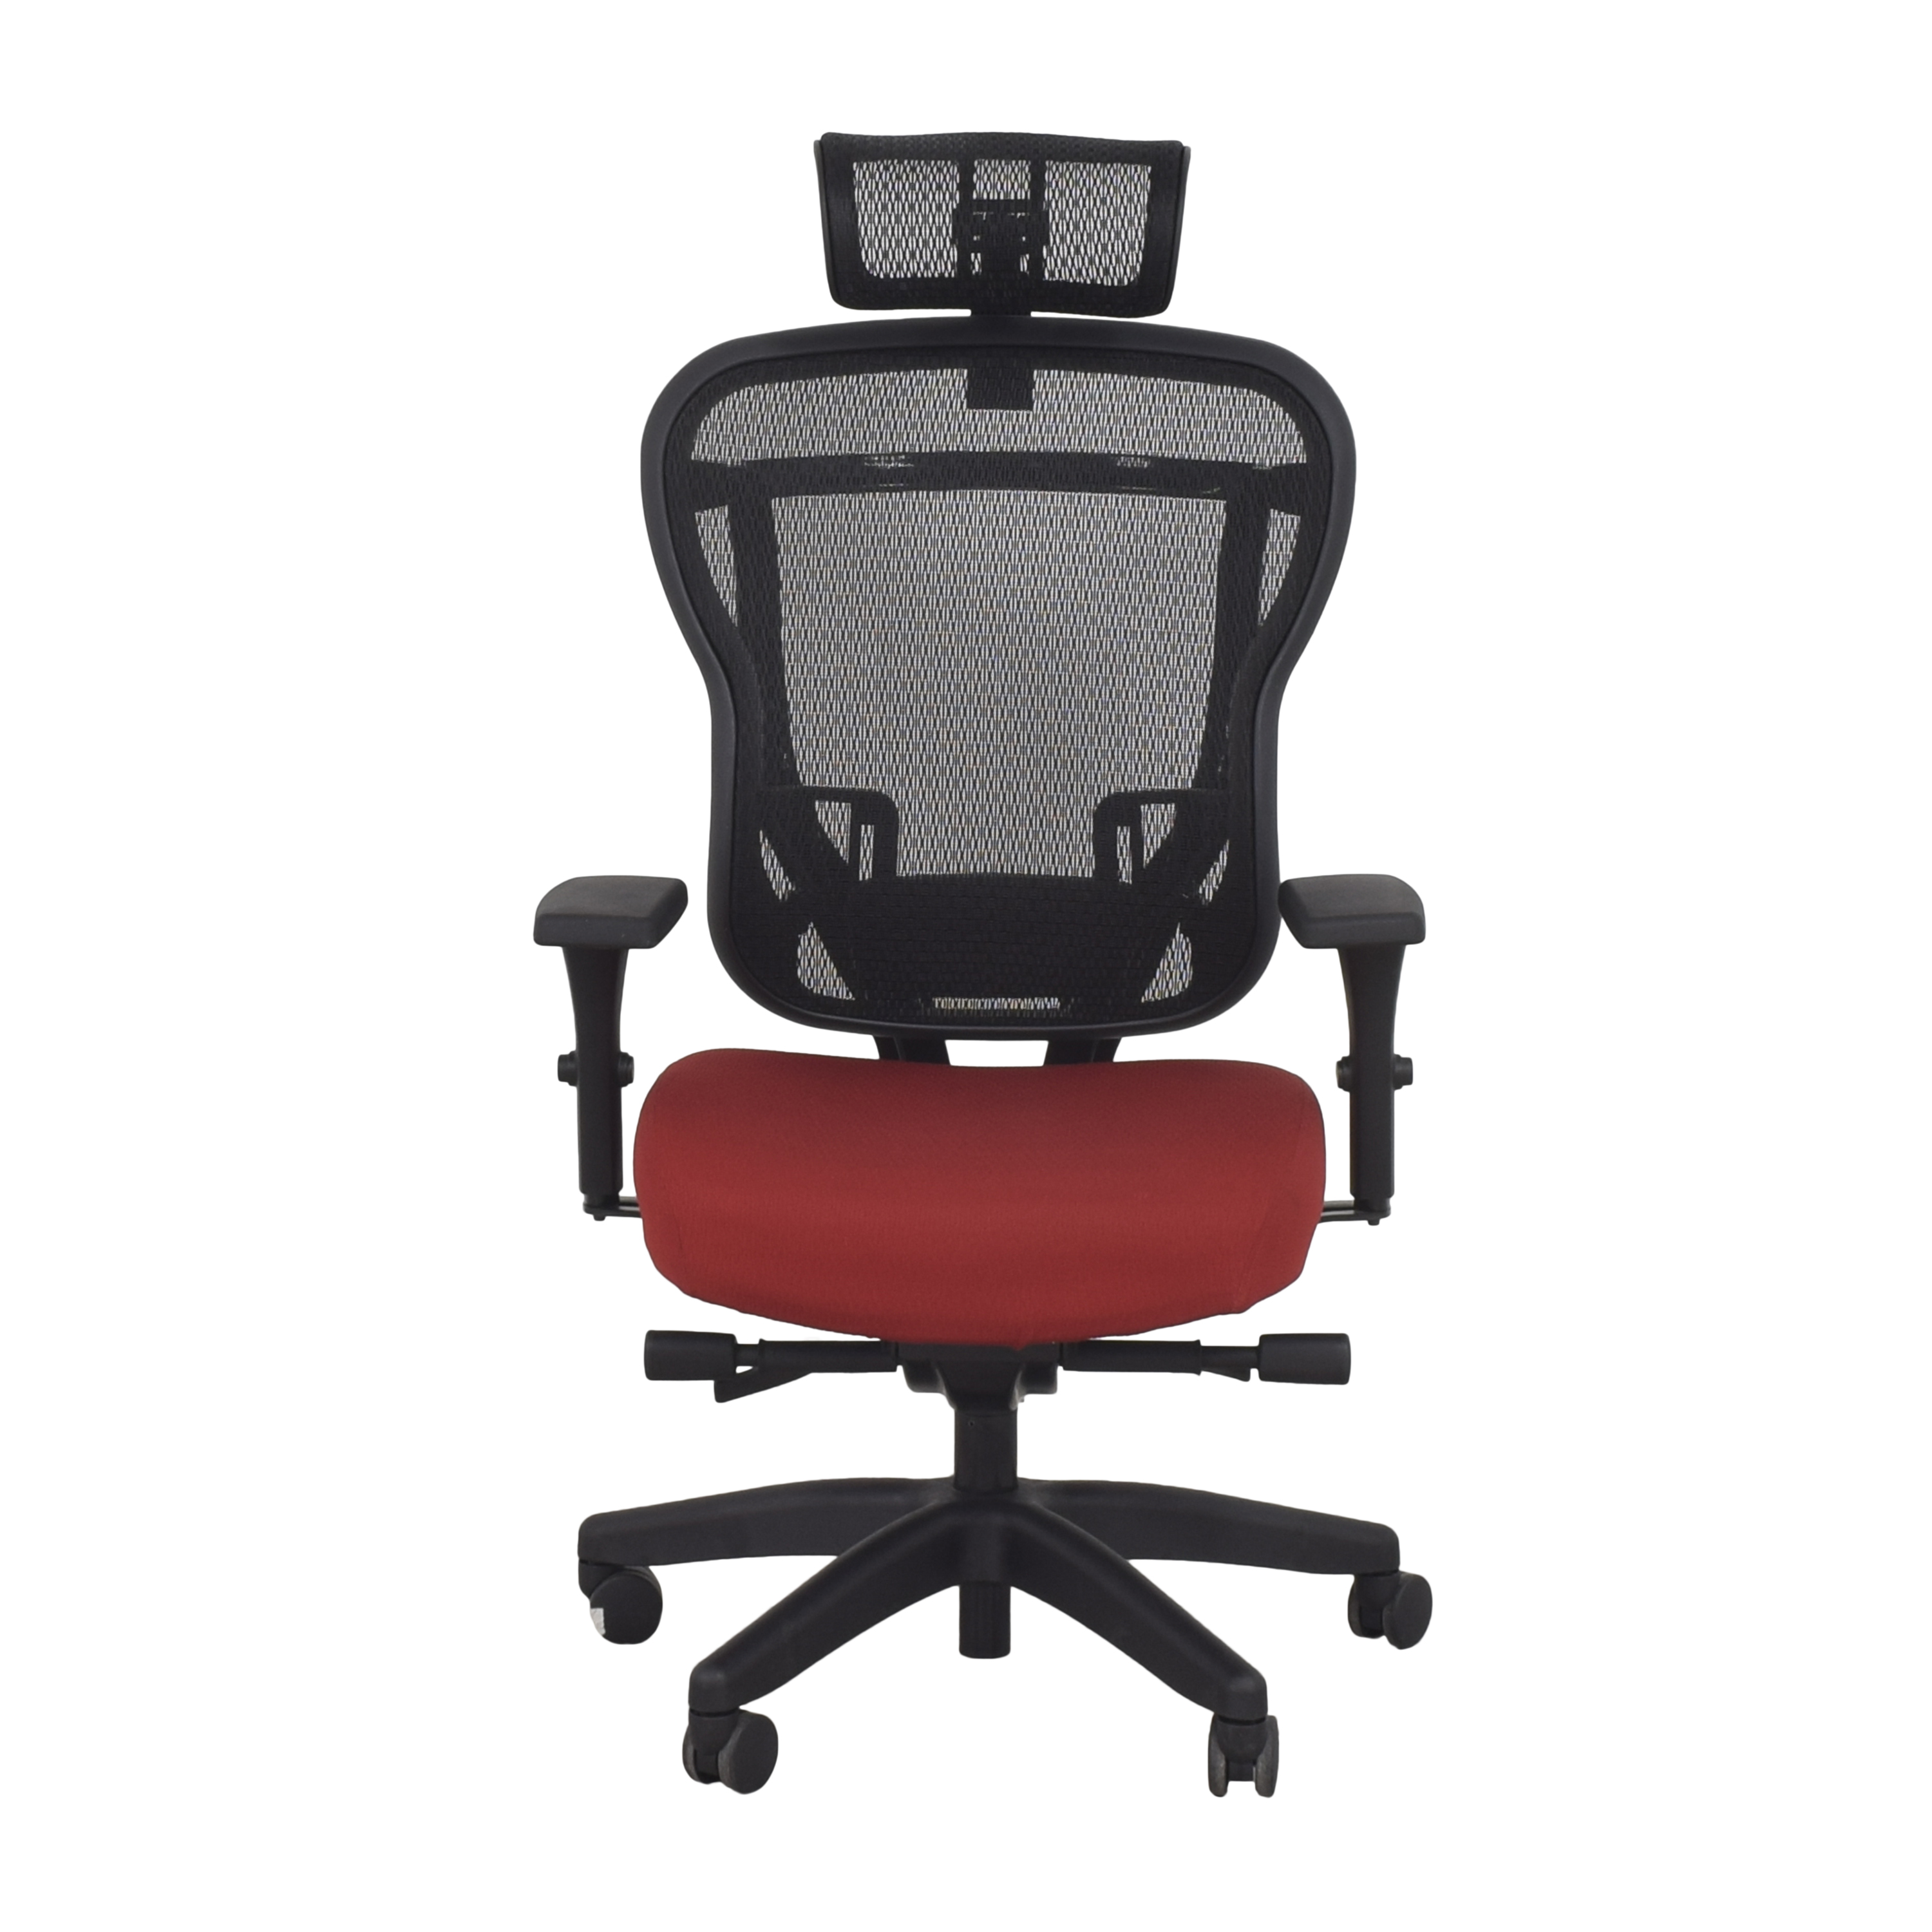 Buzz Seating Buzz Seating Rika Adjustable Task Chair Chairs